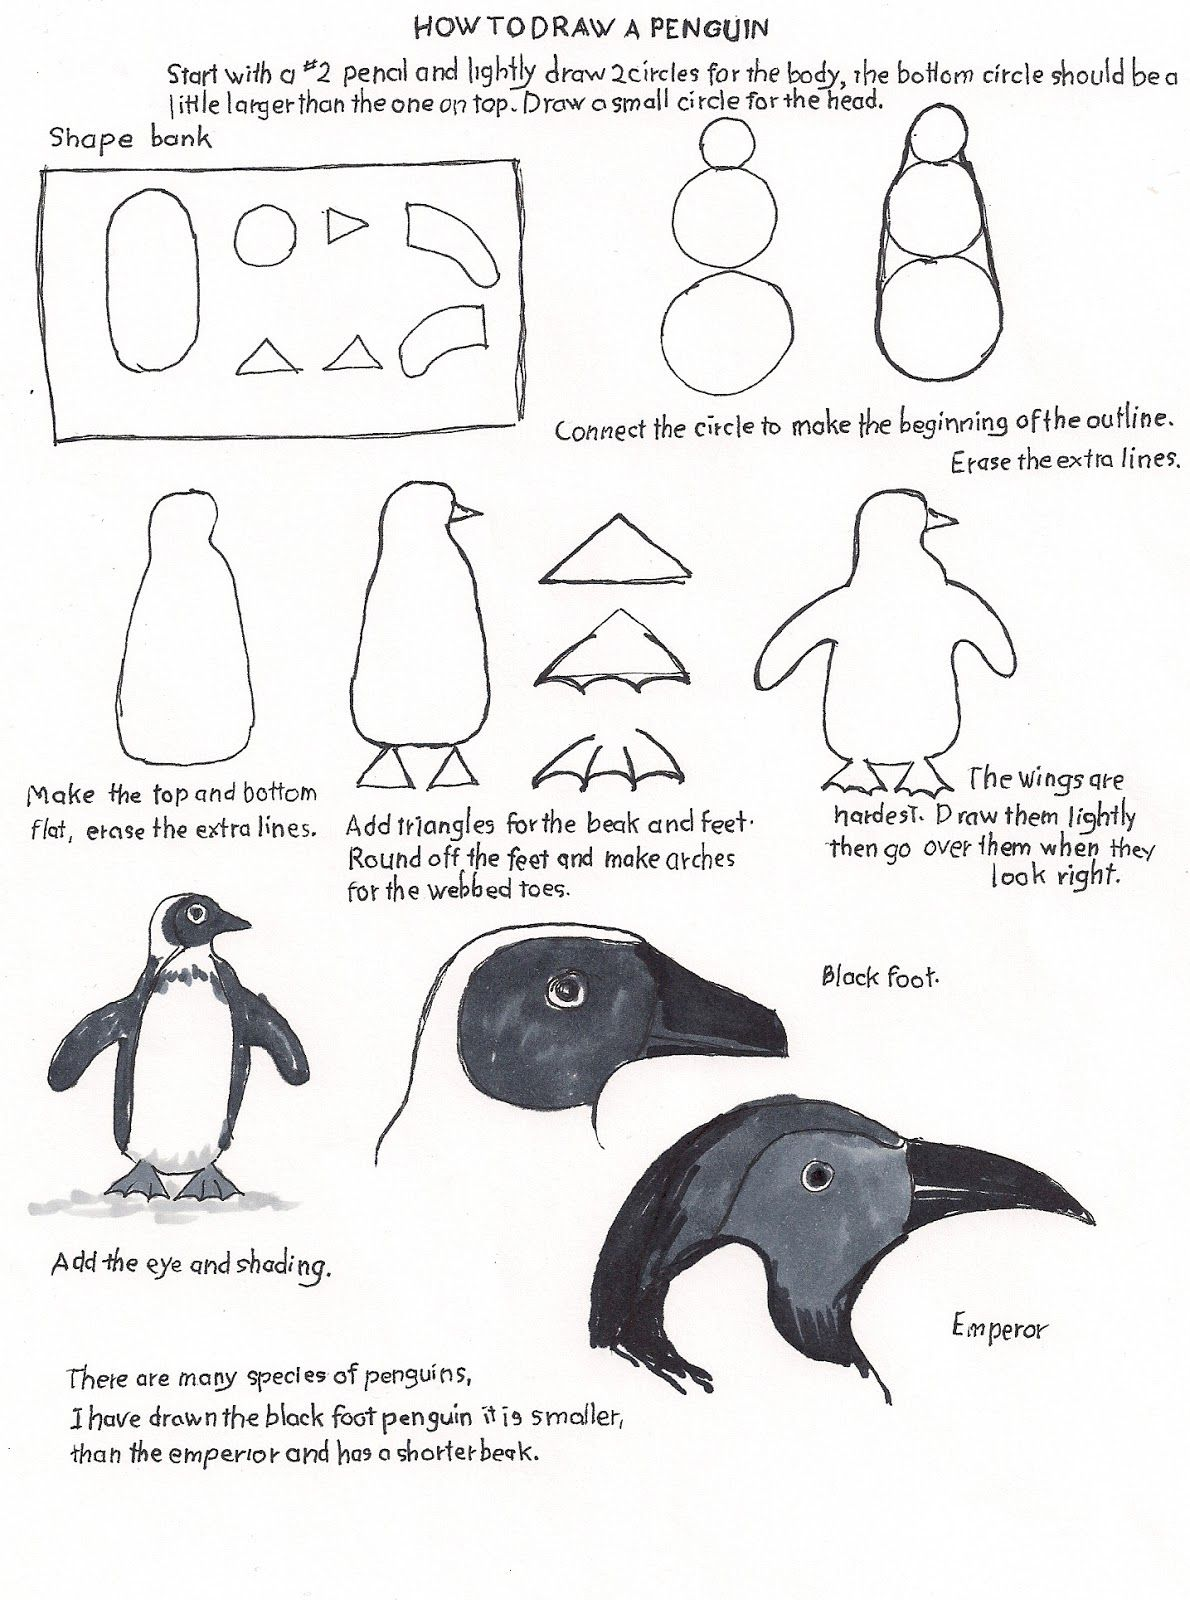 How To Draw Worksheets For The Young Artist How To Draw A Penguin For The Young Artist